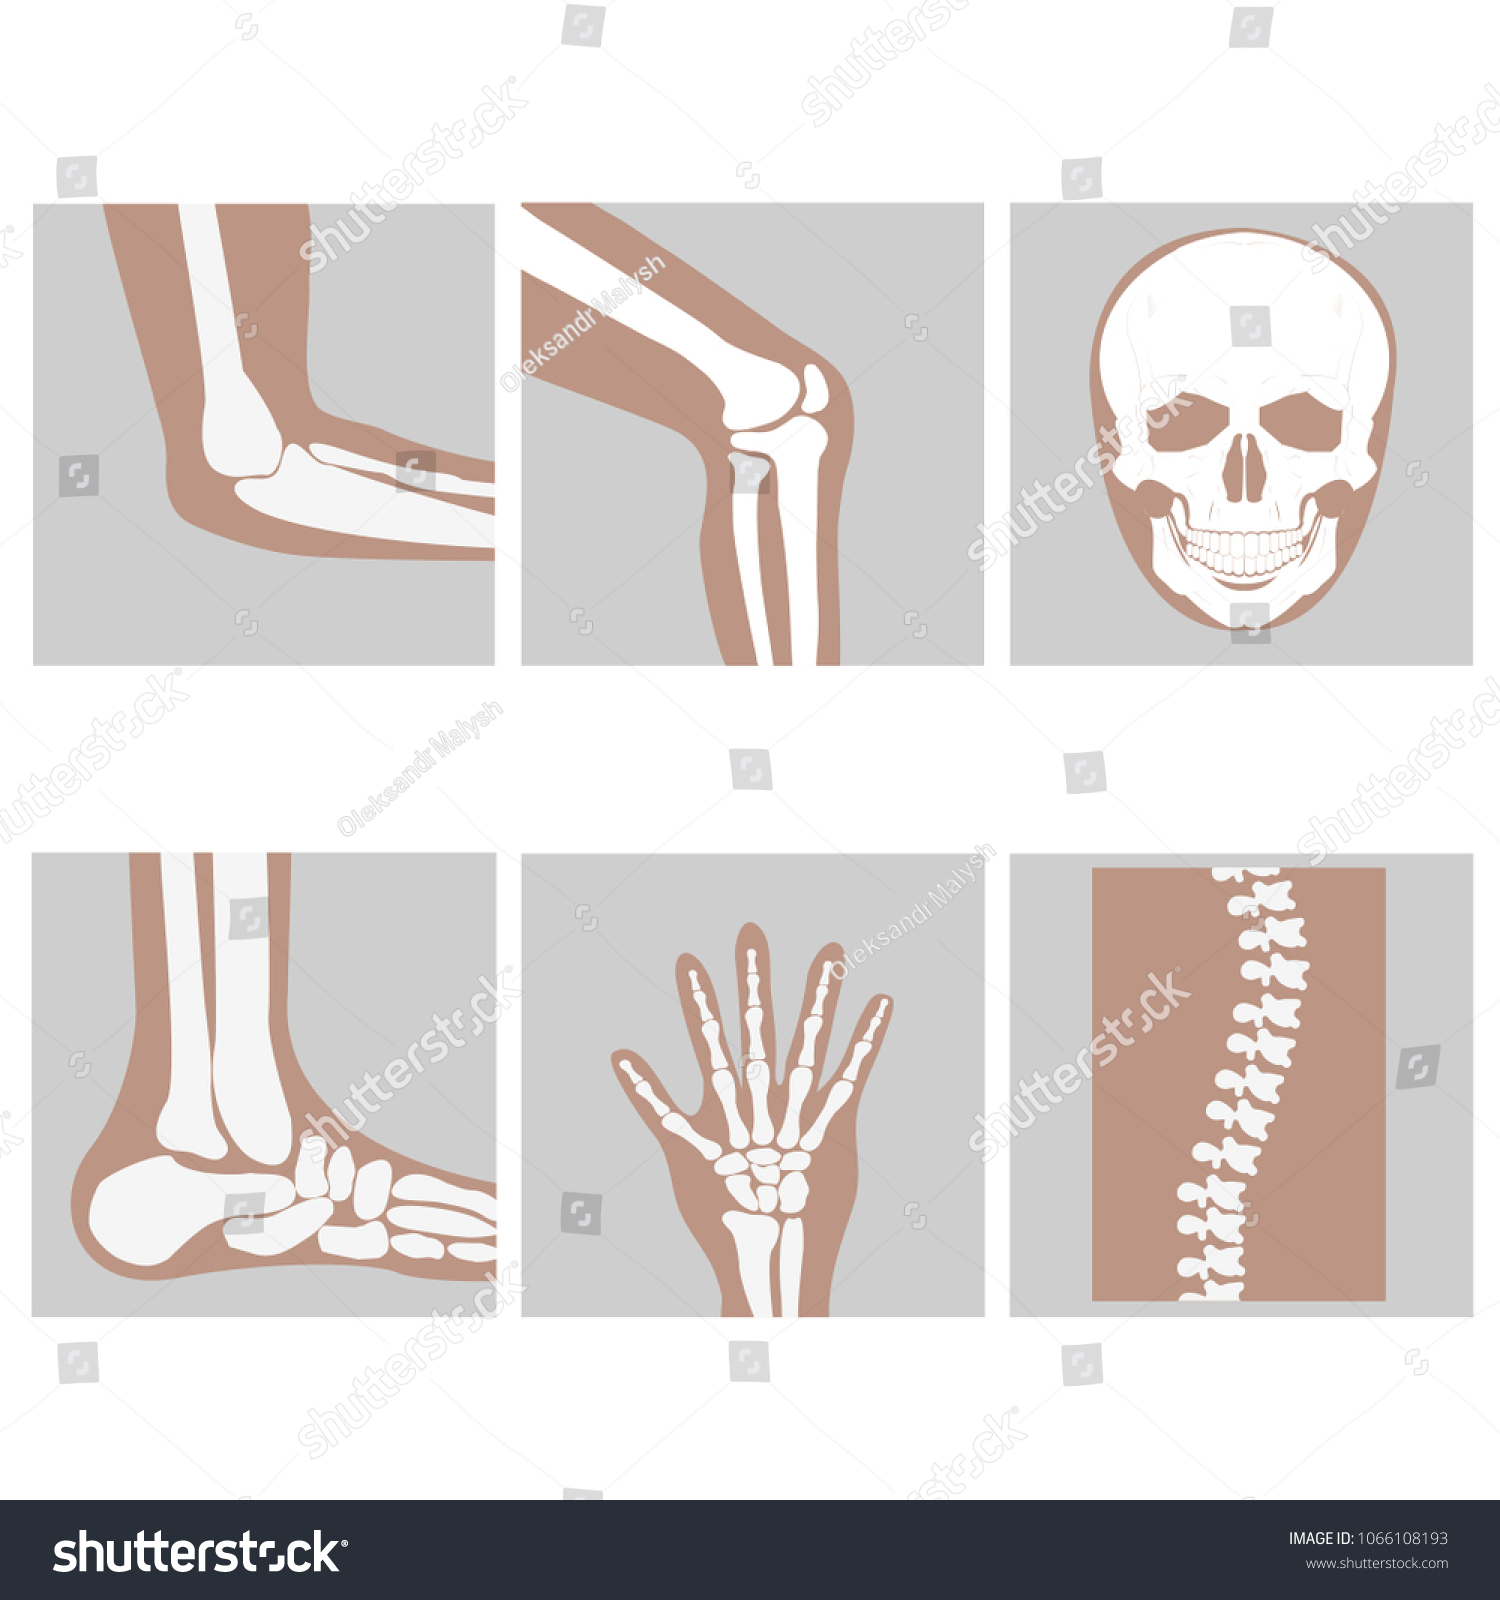 Human Joints Knee Elbow Ankle Wrist Stock Vector Royalty Free